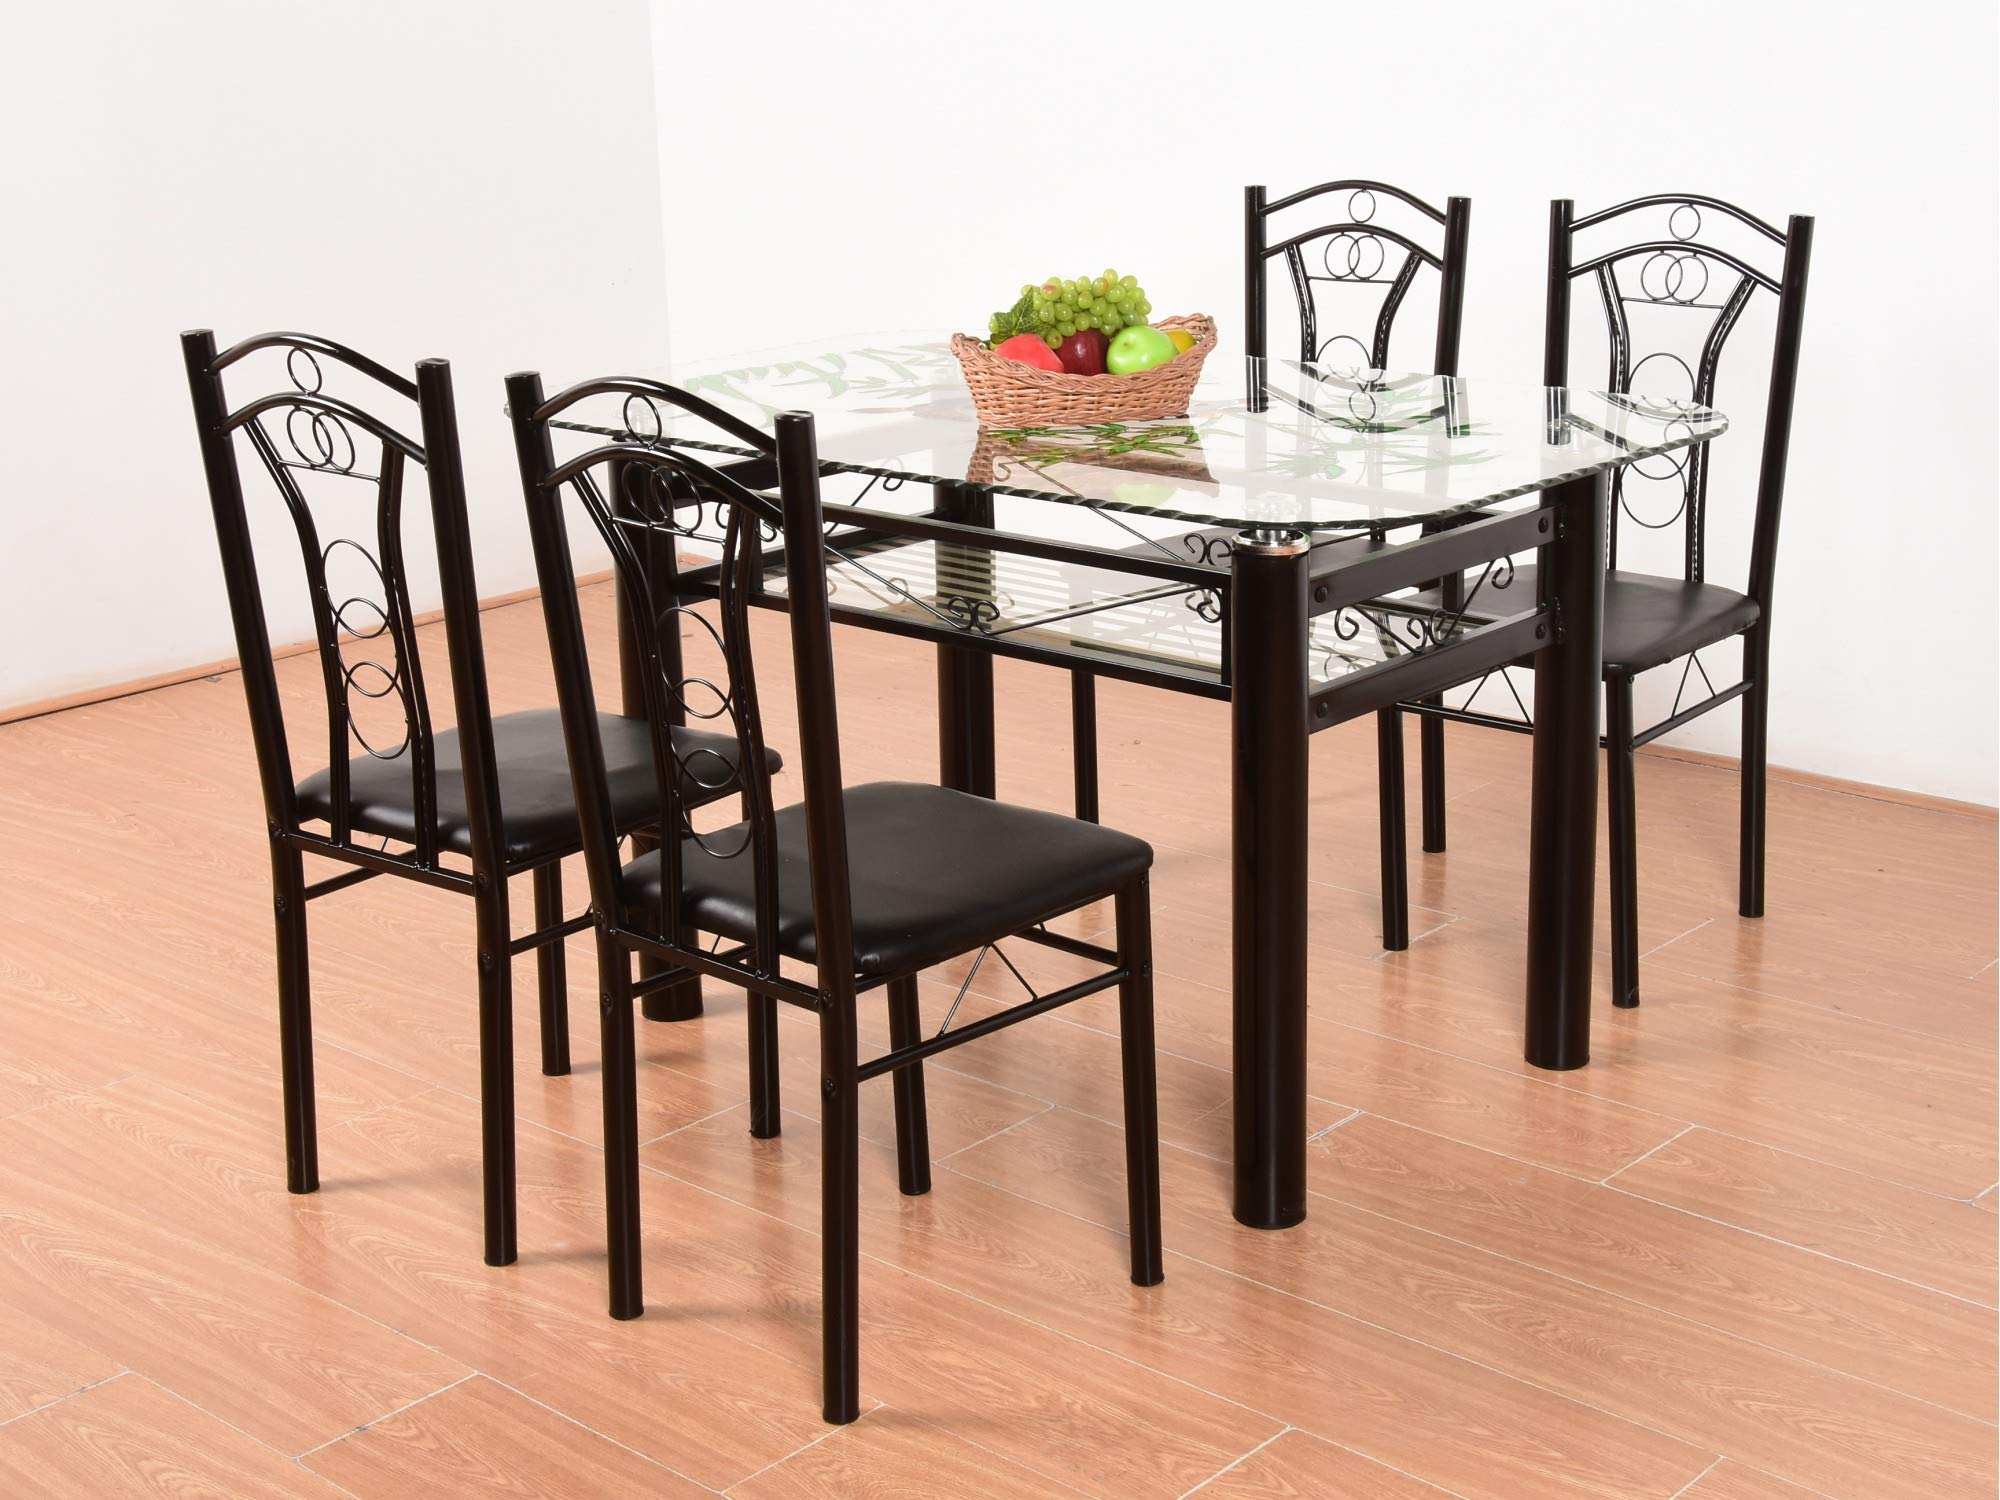 T2a Furniture Neoplex Glass Top Metal Base 4 Seater Dining Table Black Buy Online In Mongolia At Mongolia Desertcart Com Productid 142354929